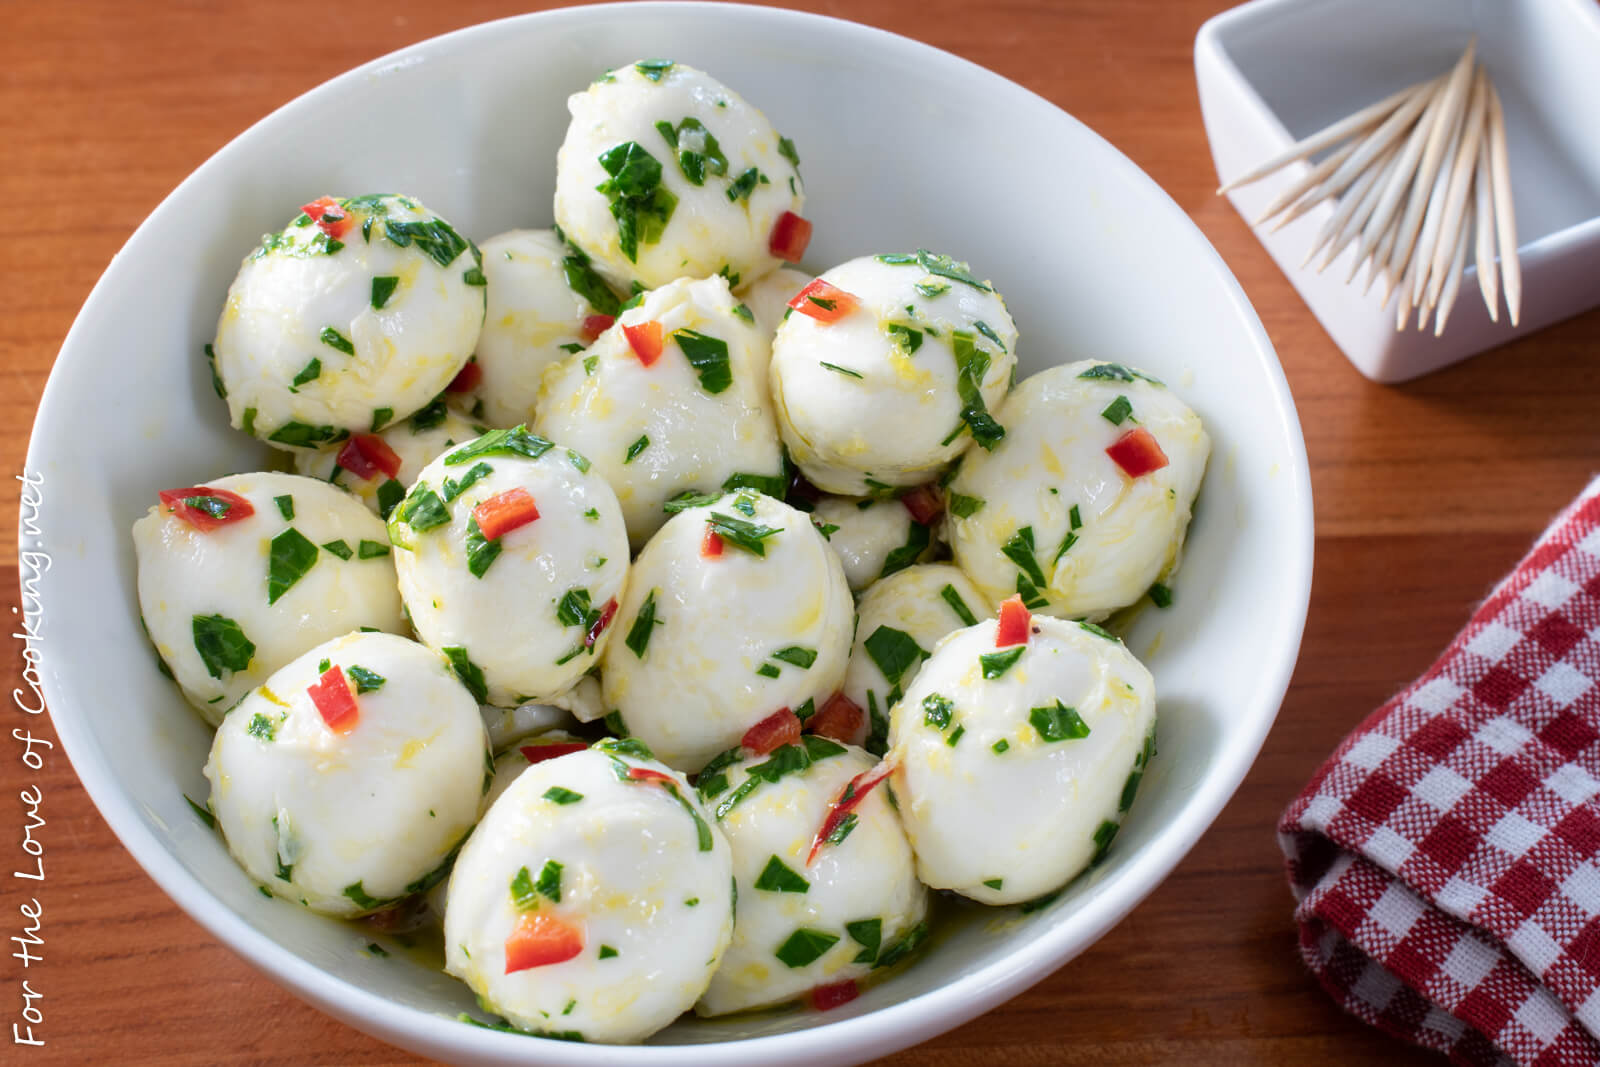 Marinated Mozzarella Balls